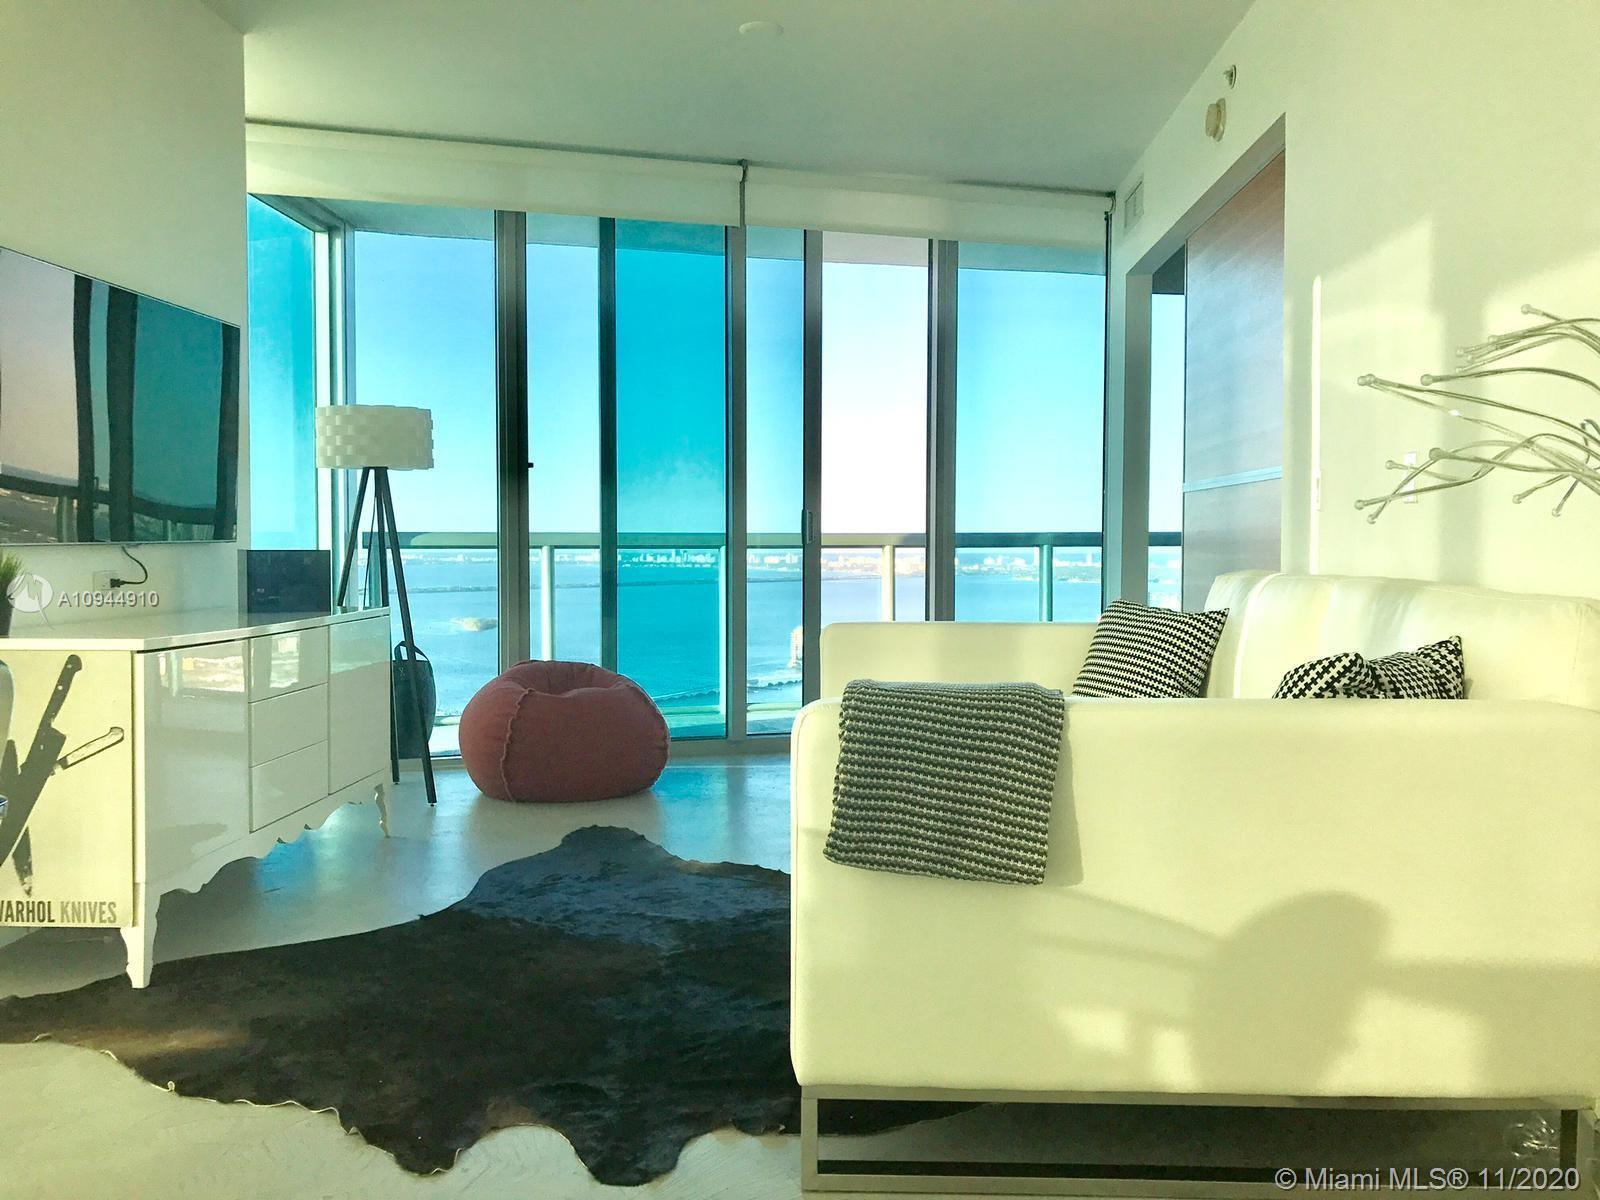 Arguably the BEST Miami view at the LOWEST price. GORGEOUS 2/ Bedroom 2 Bathroom Condo in the heart